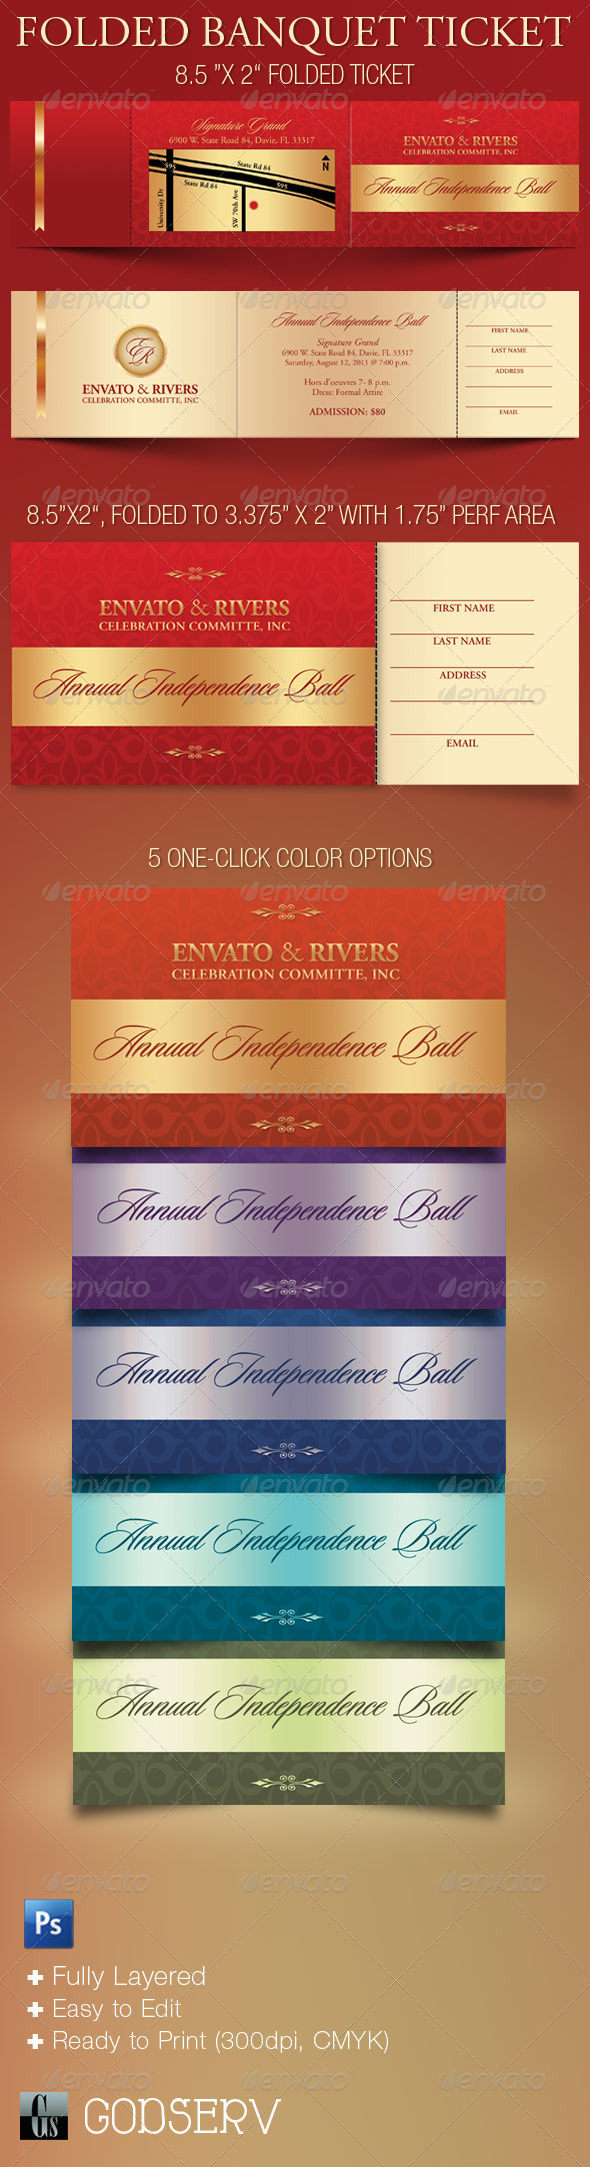 Folded Banquet Ticket Template - Miscellaneous Print Templates